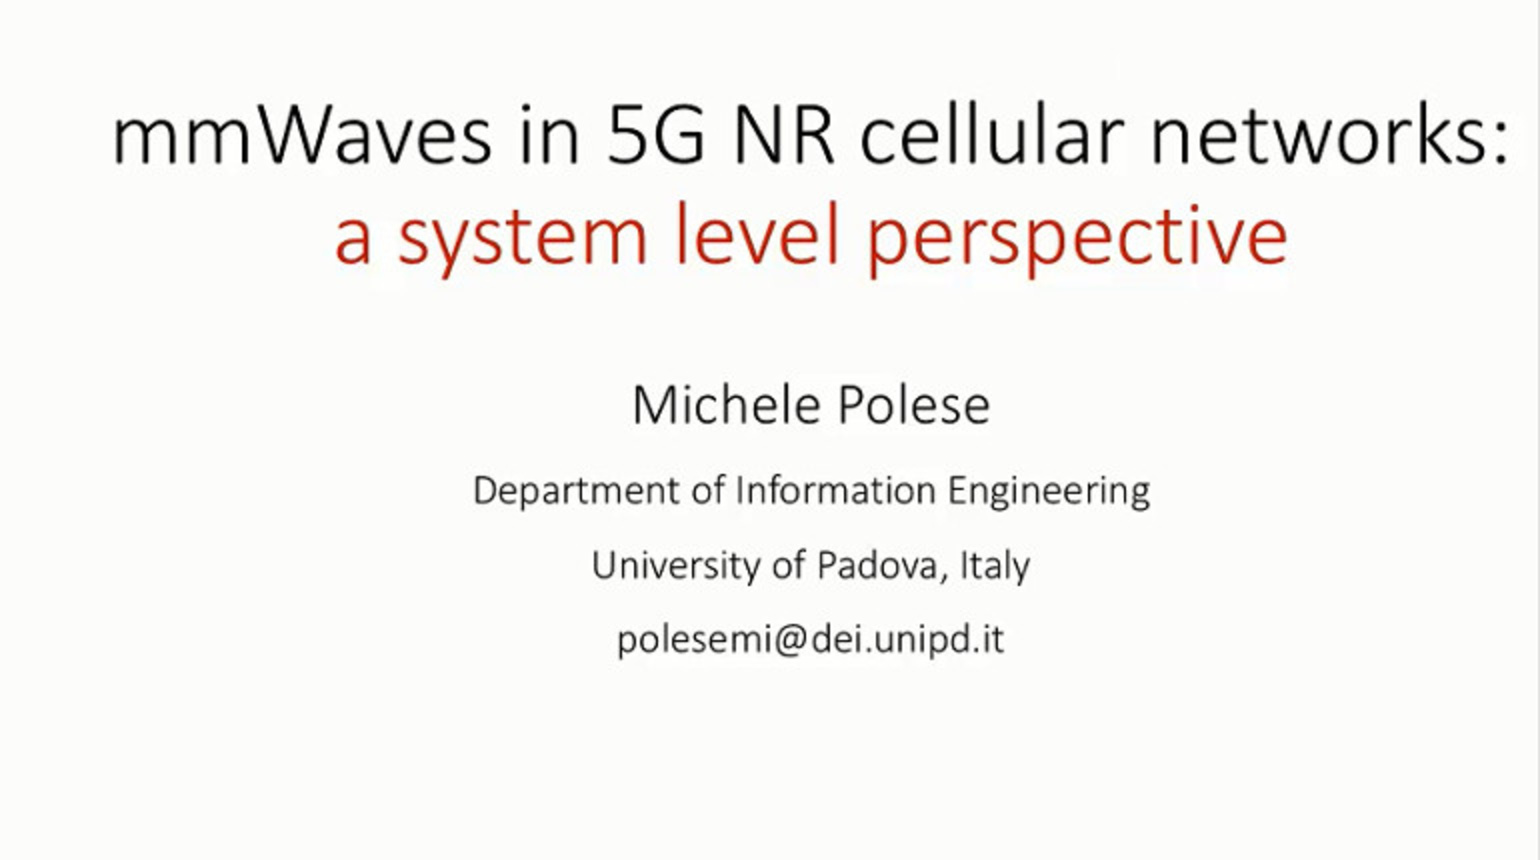 IEEE Future Networks: mmWaves in 5G NR Cellular Networks: A System Level Perspective